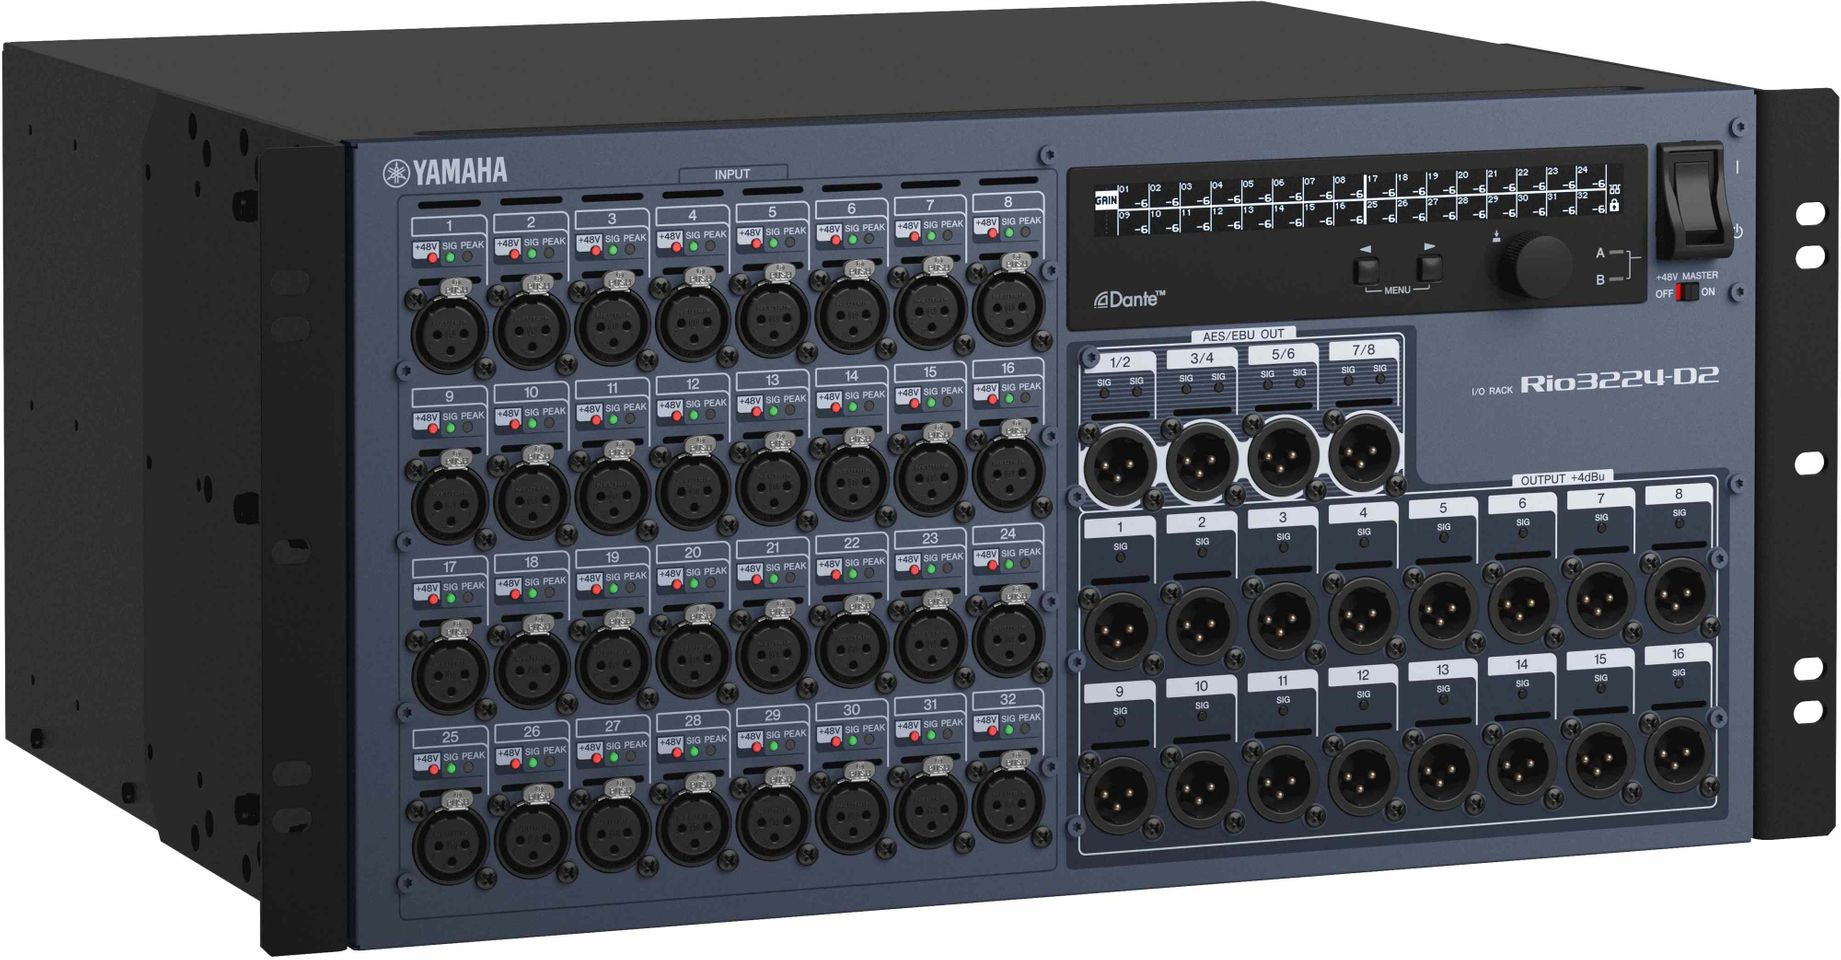 Yamaha's RIO3224-D2 Dante Stagebox is at Hollywood Sound Systems.